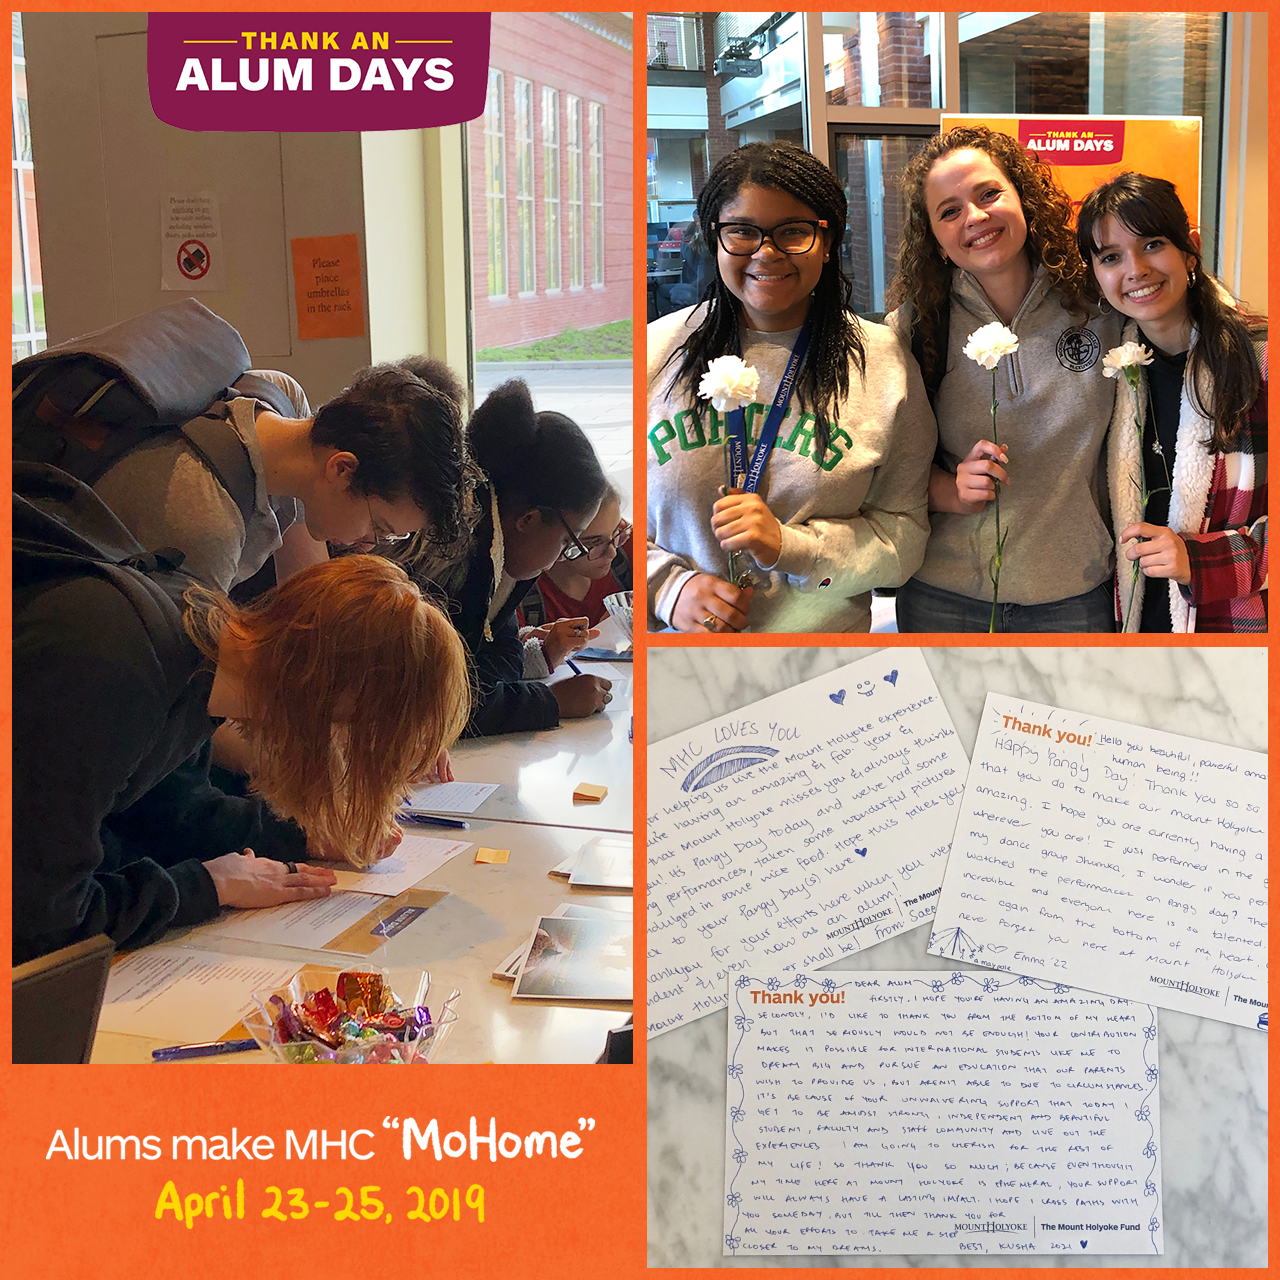 Photo collage from Thank An Alum Days 2019